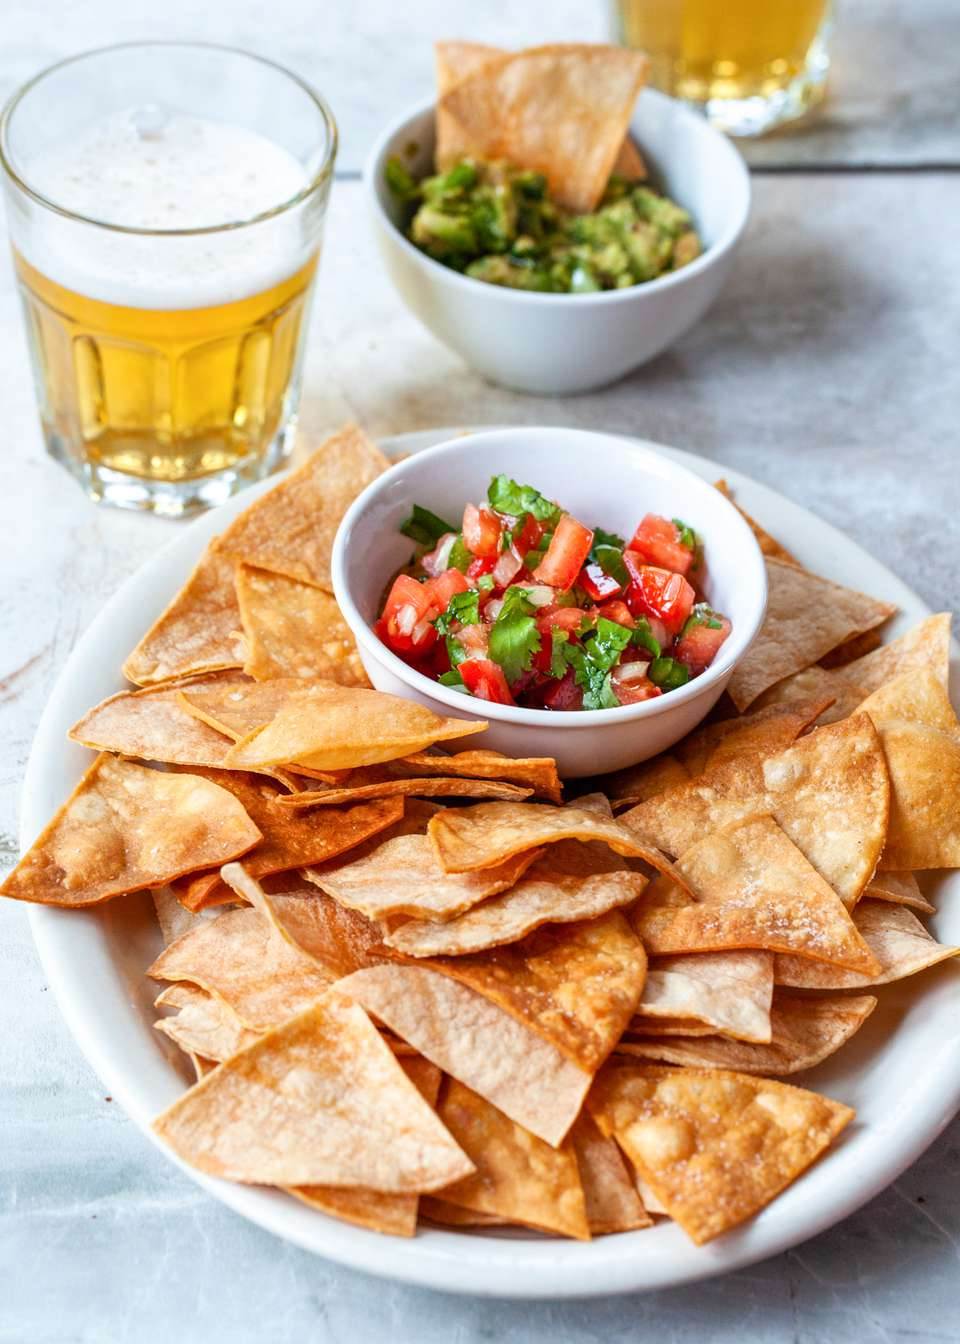 A plate of tortilla chips and salsa.